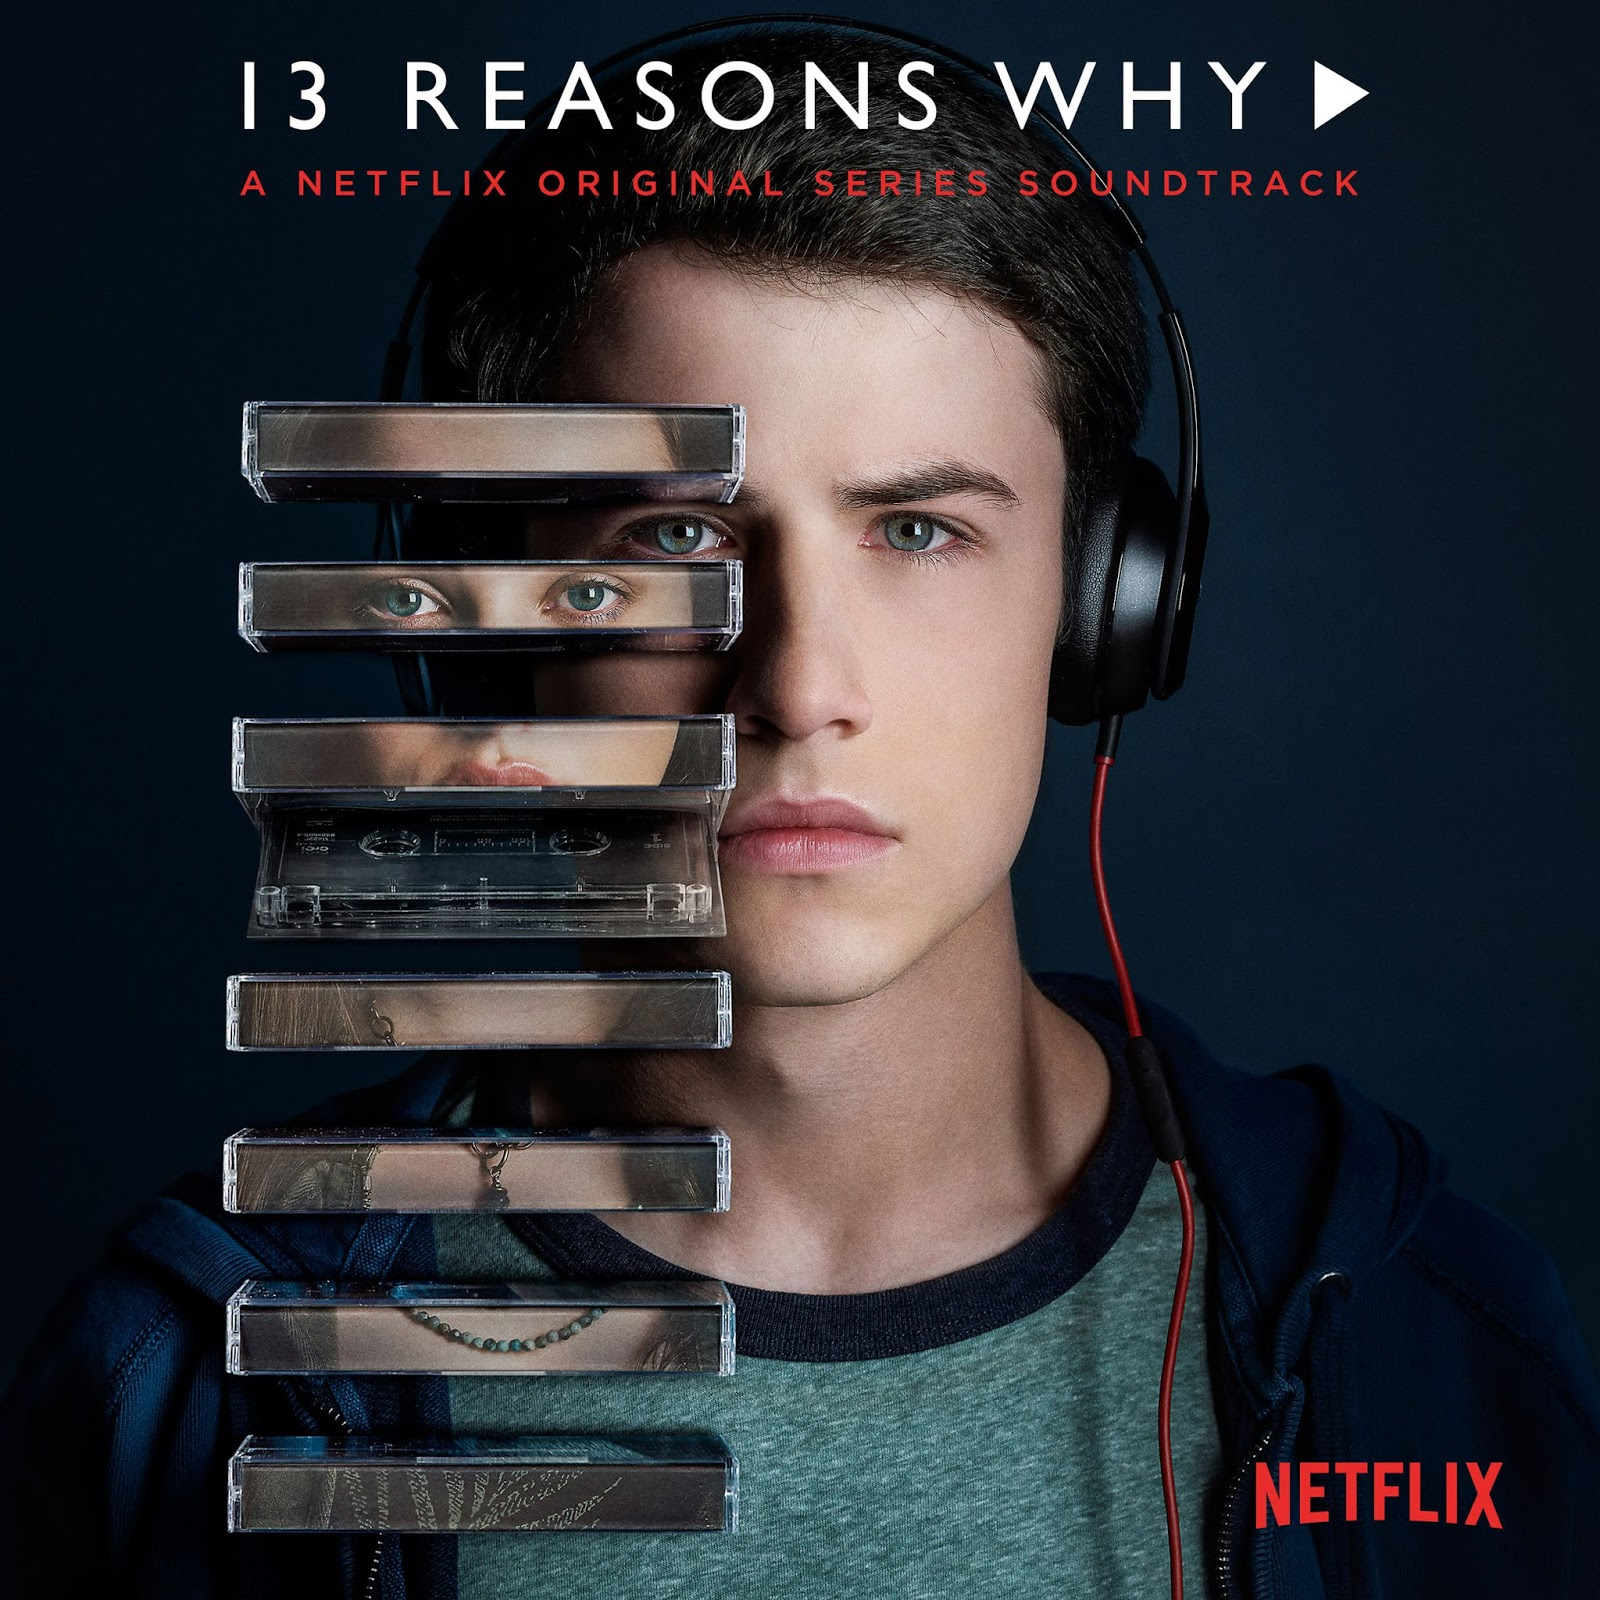 13 Reasons Why, Dylan Minnette, 2018, TV Series